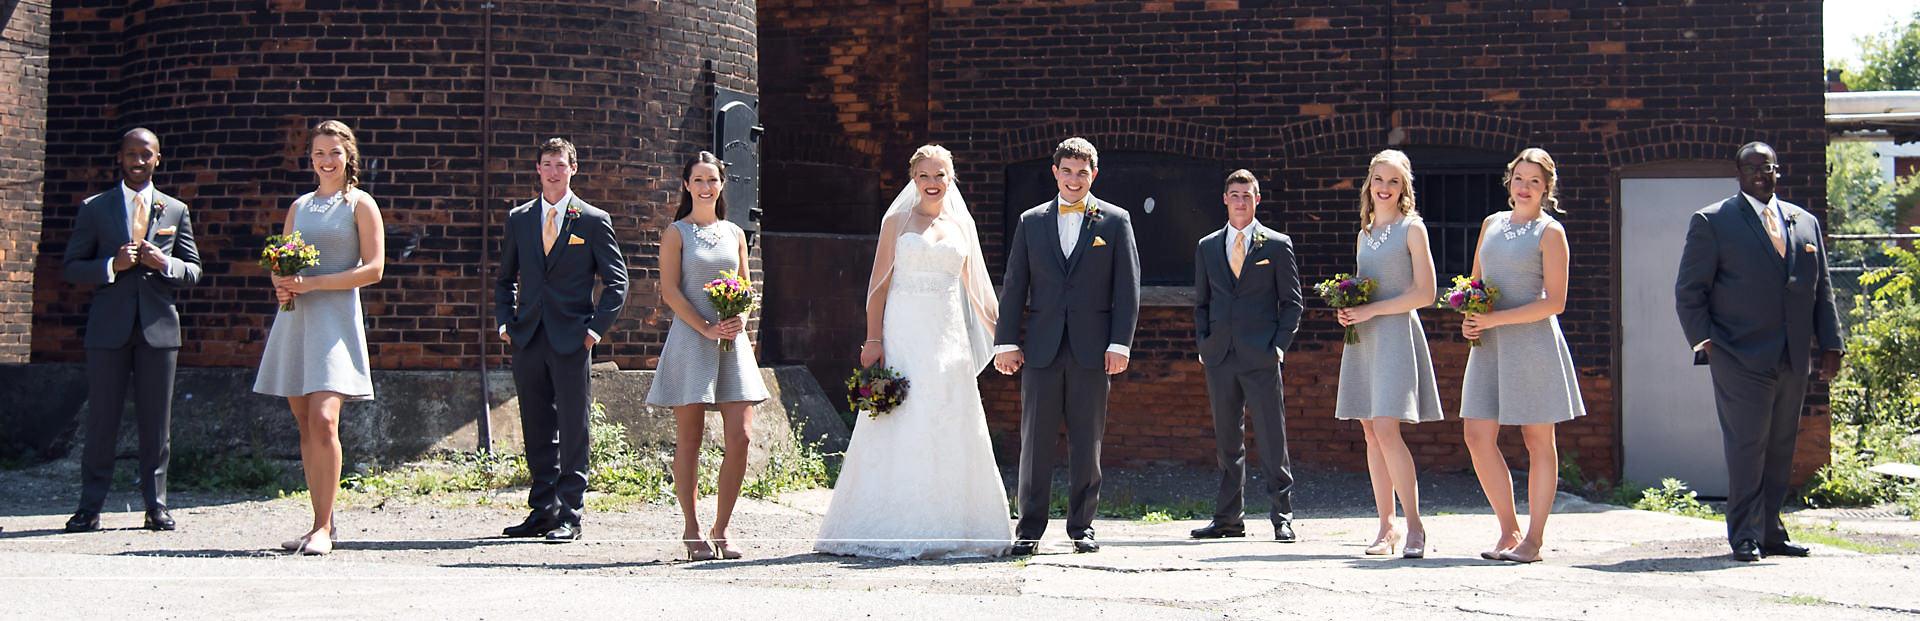 Hamilton_Wedding_Photography_22